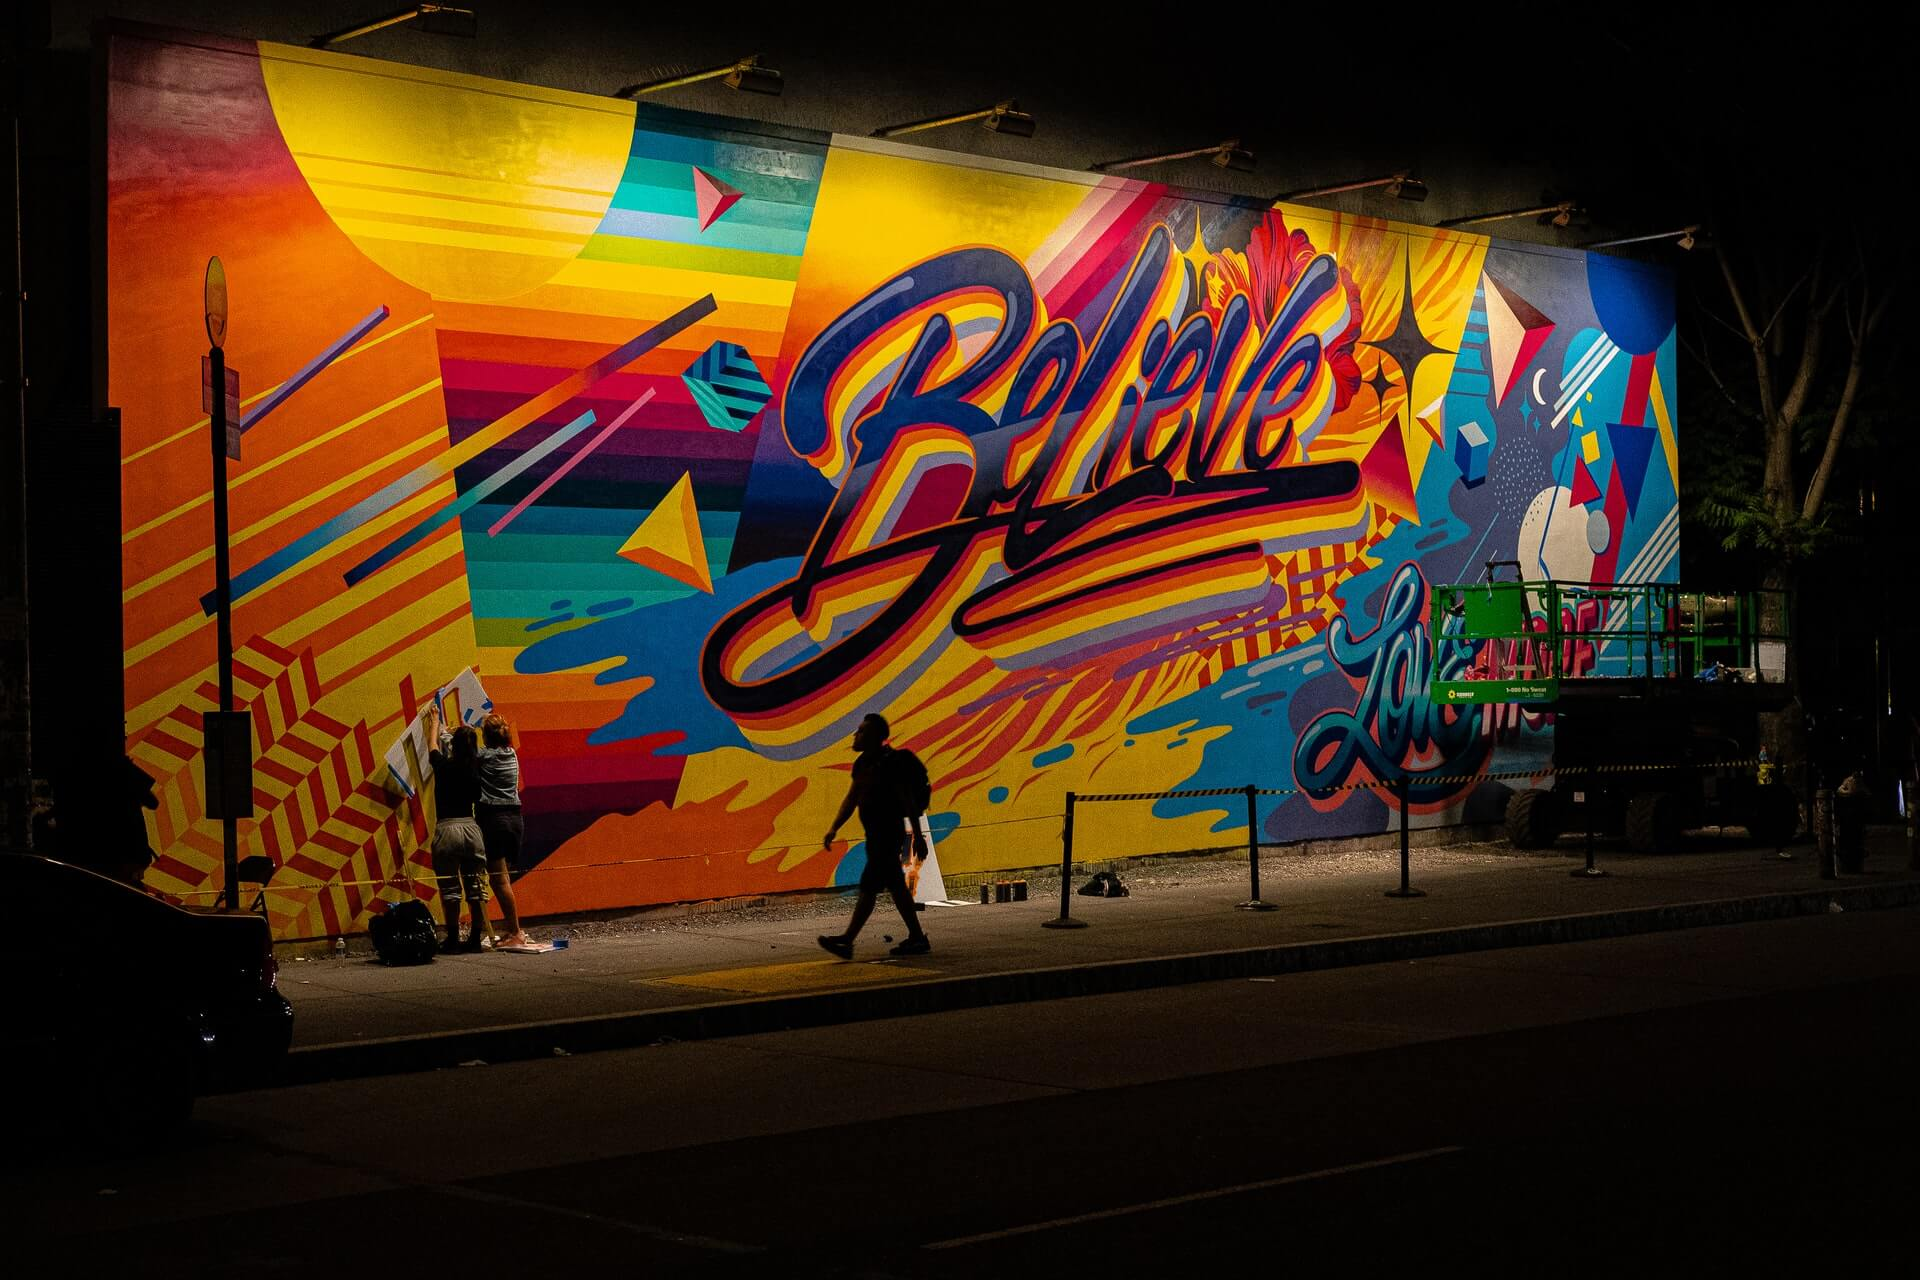 quotes-beliving-yourself-colorful-mural